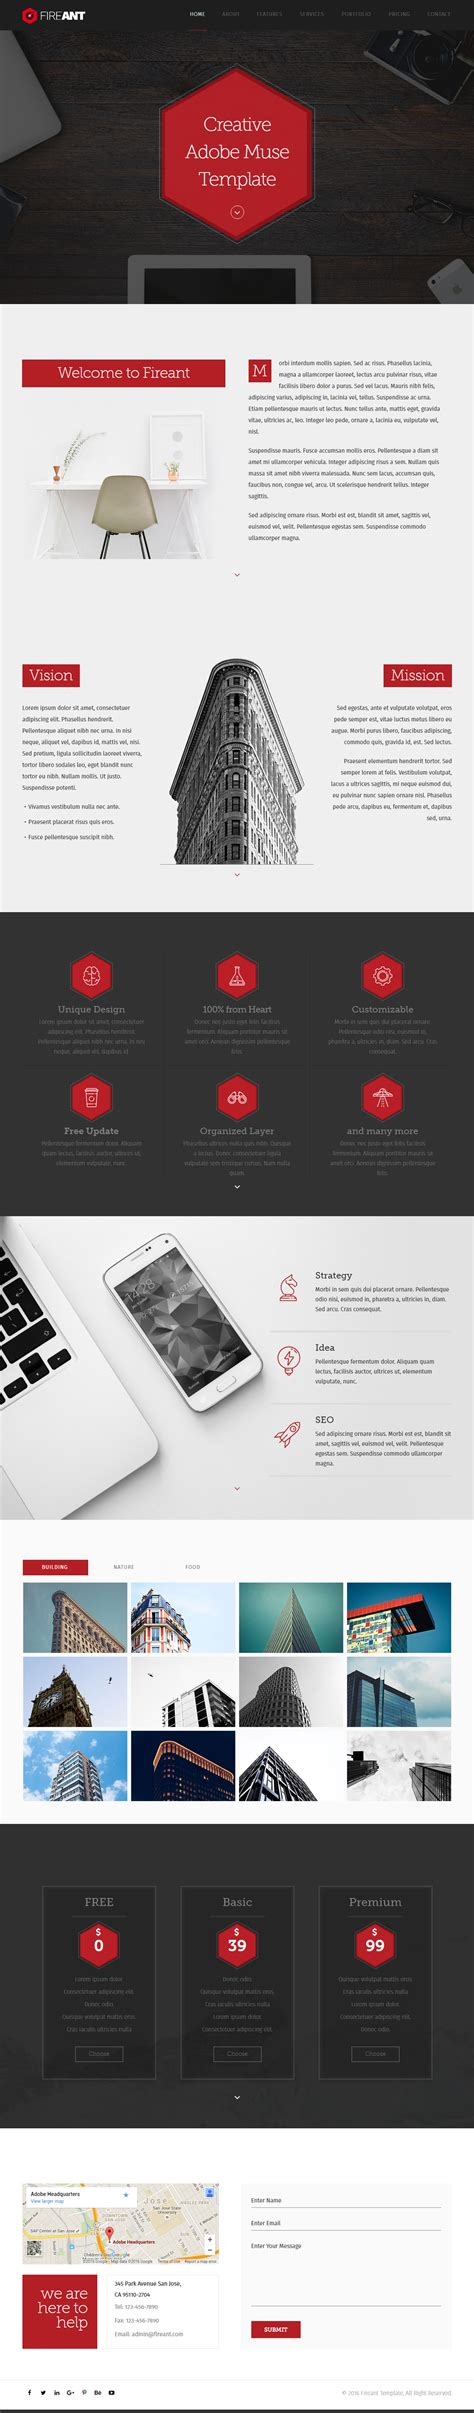 adobe muse mobile templates 15 best one page muse templates 2017 responsive miracle